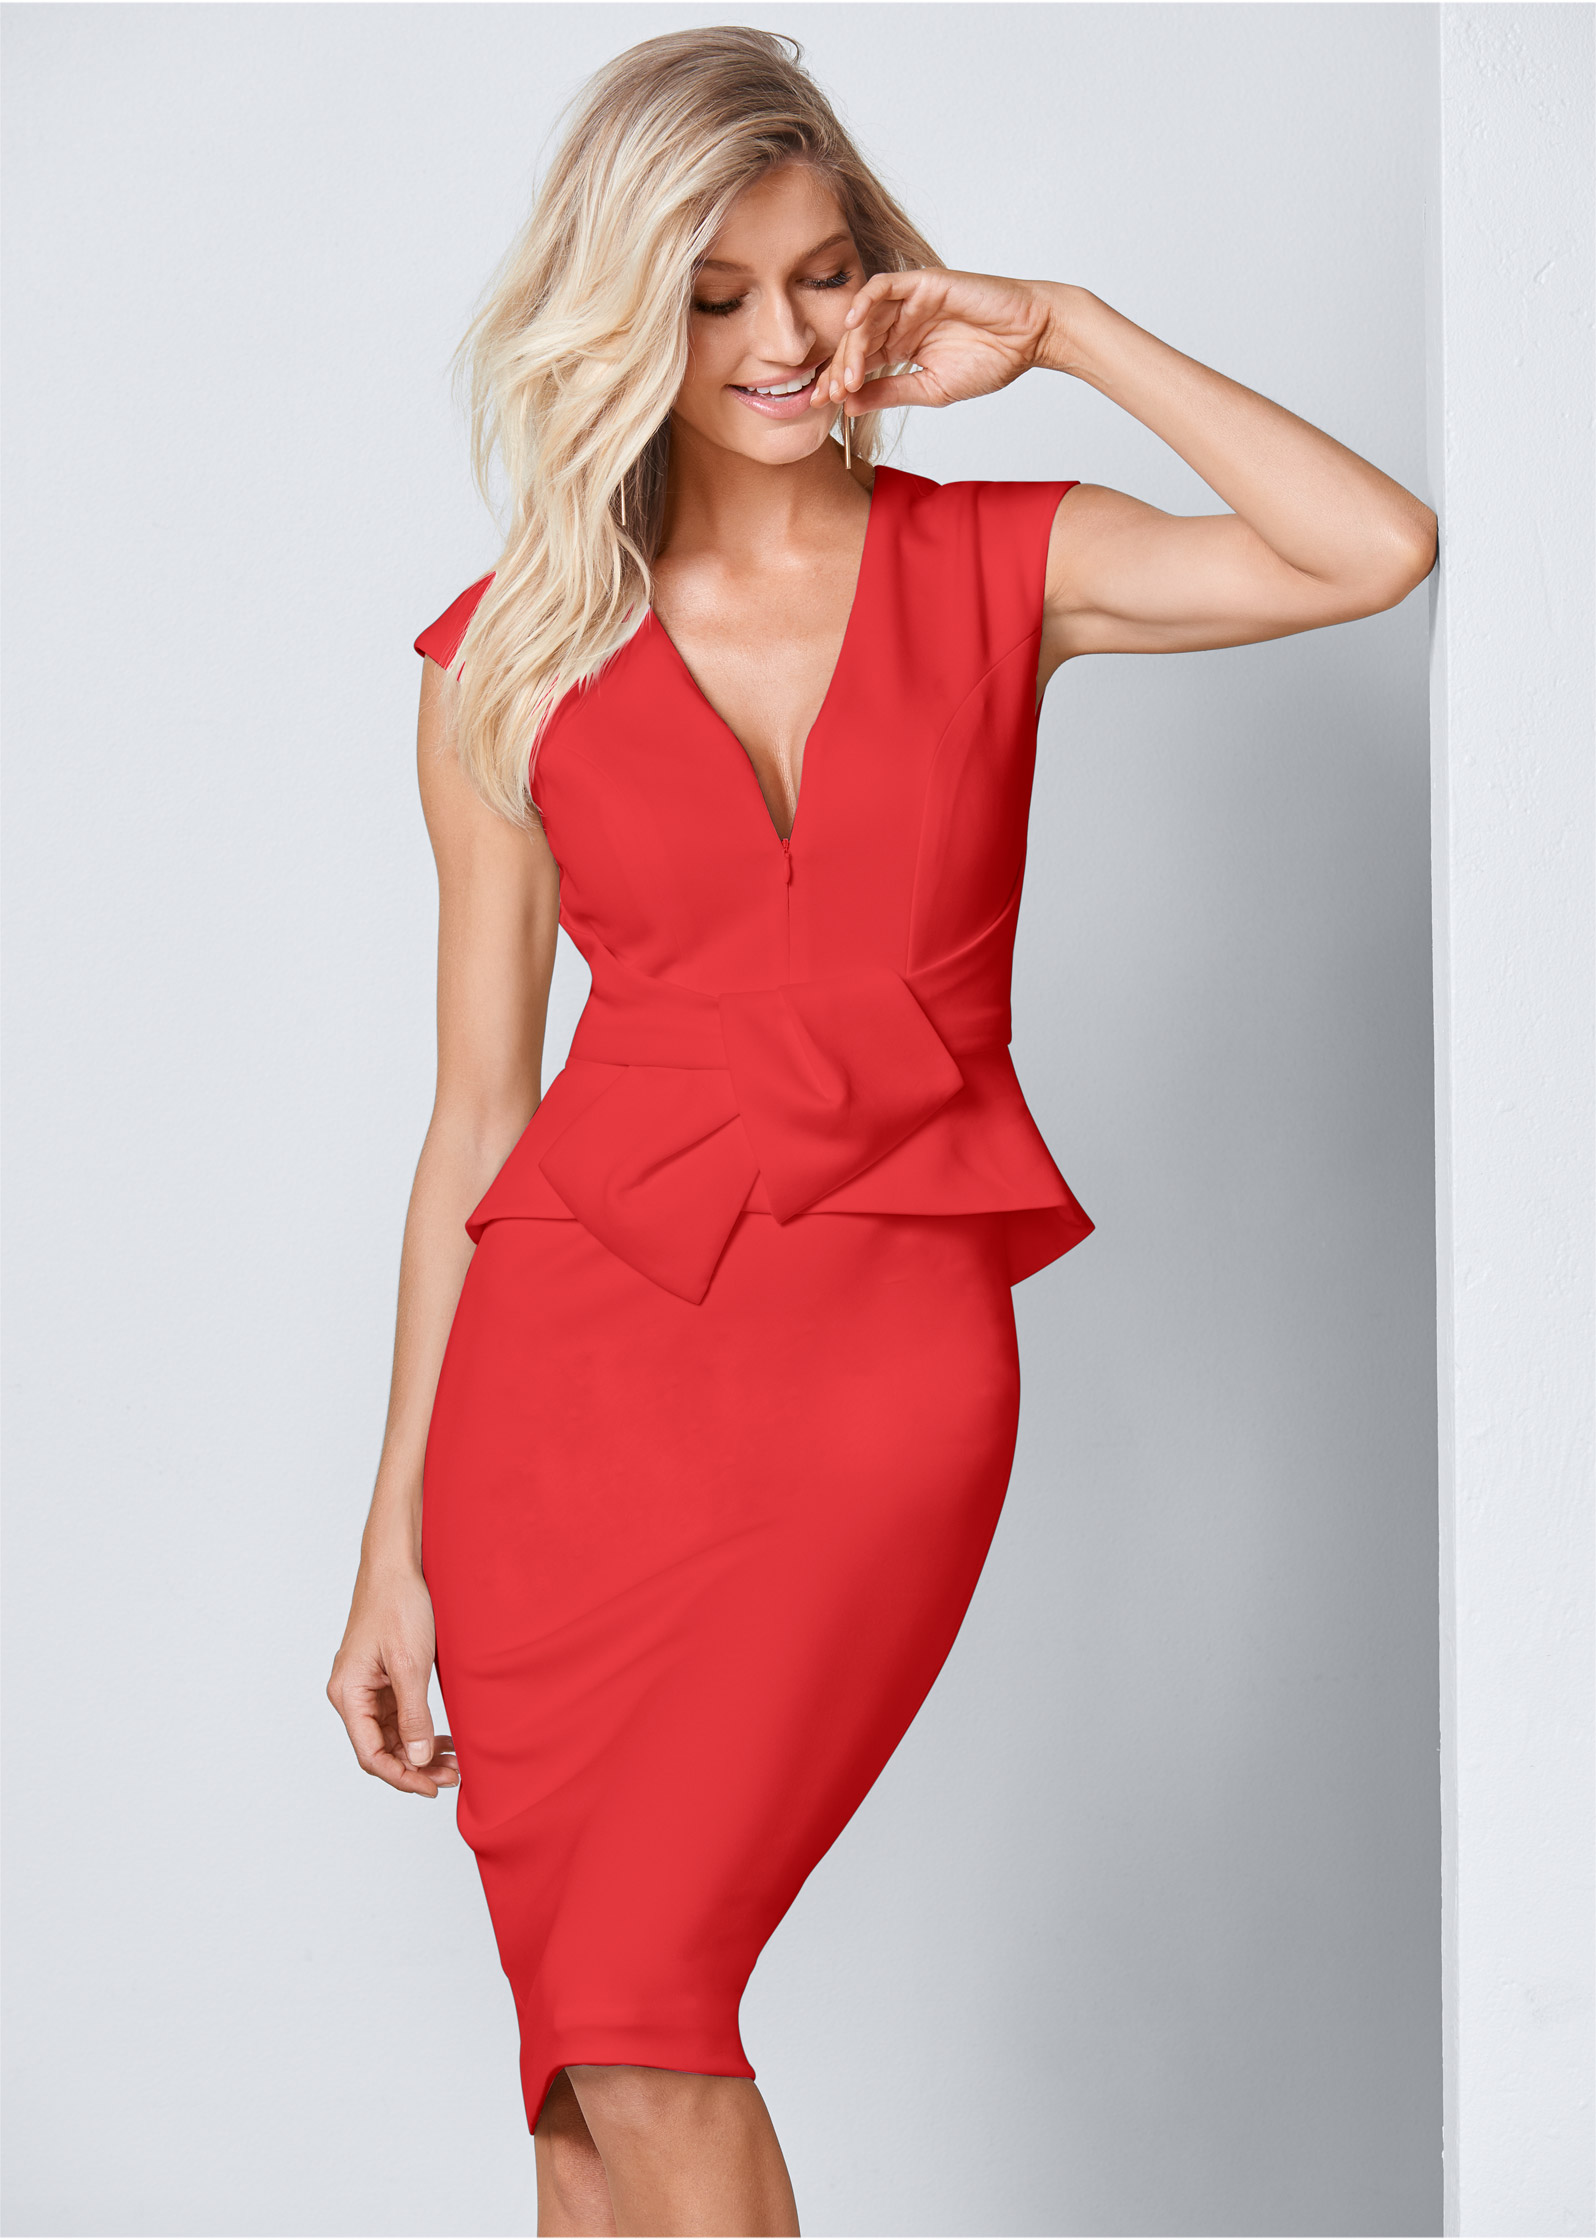 Where to Get Bodycon Dresses